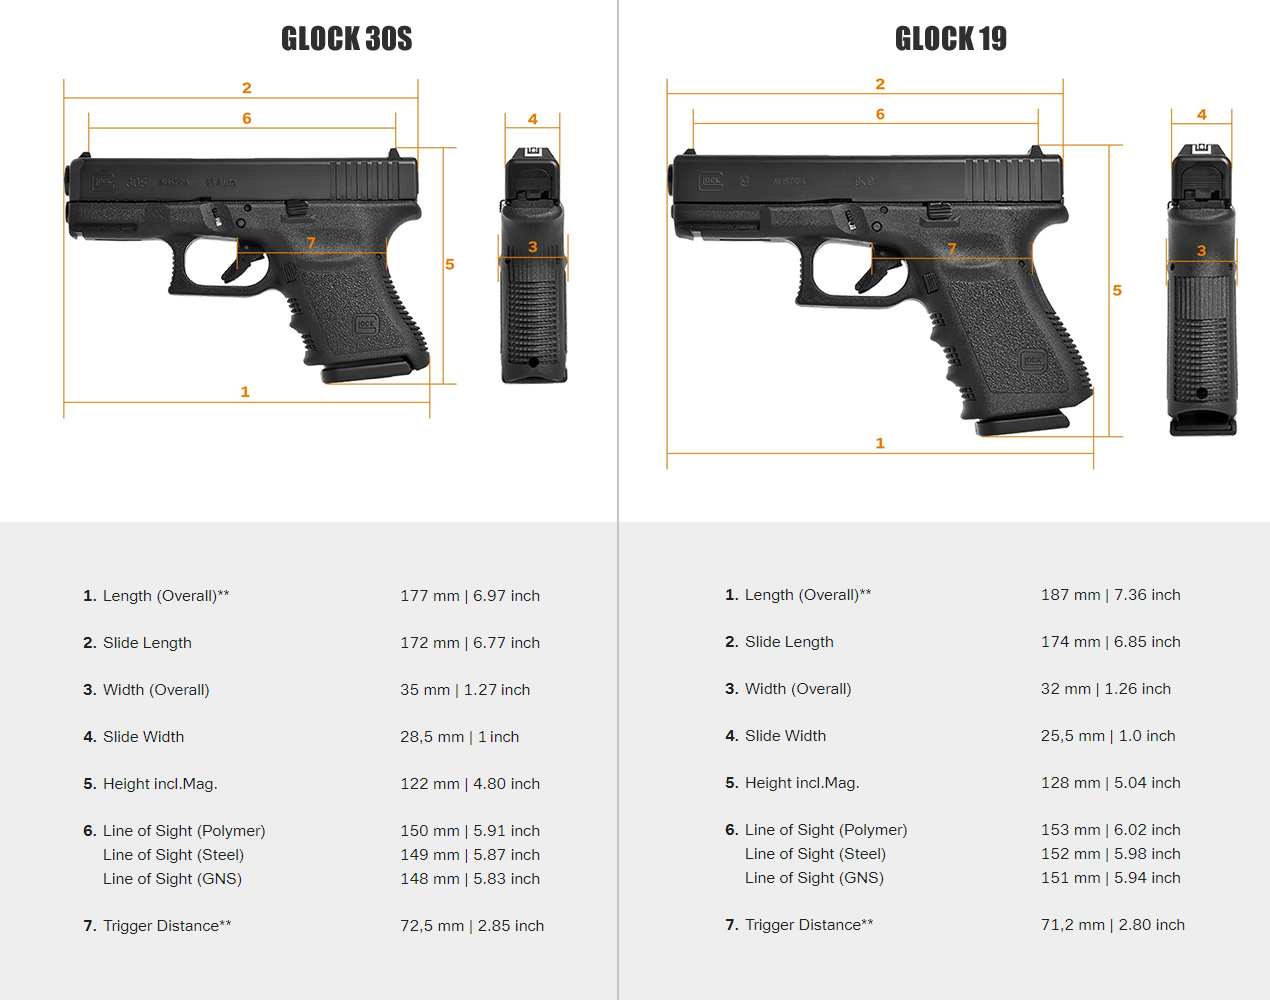 Comparing the G30S to the G19